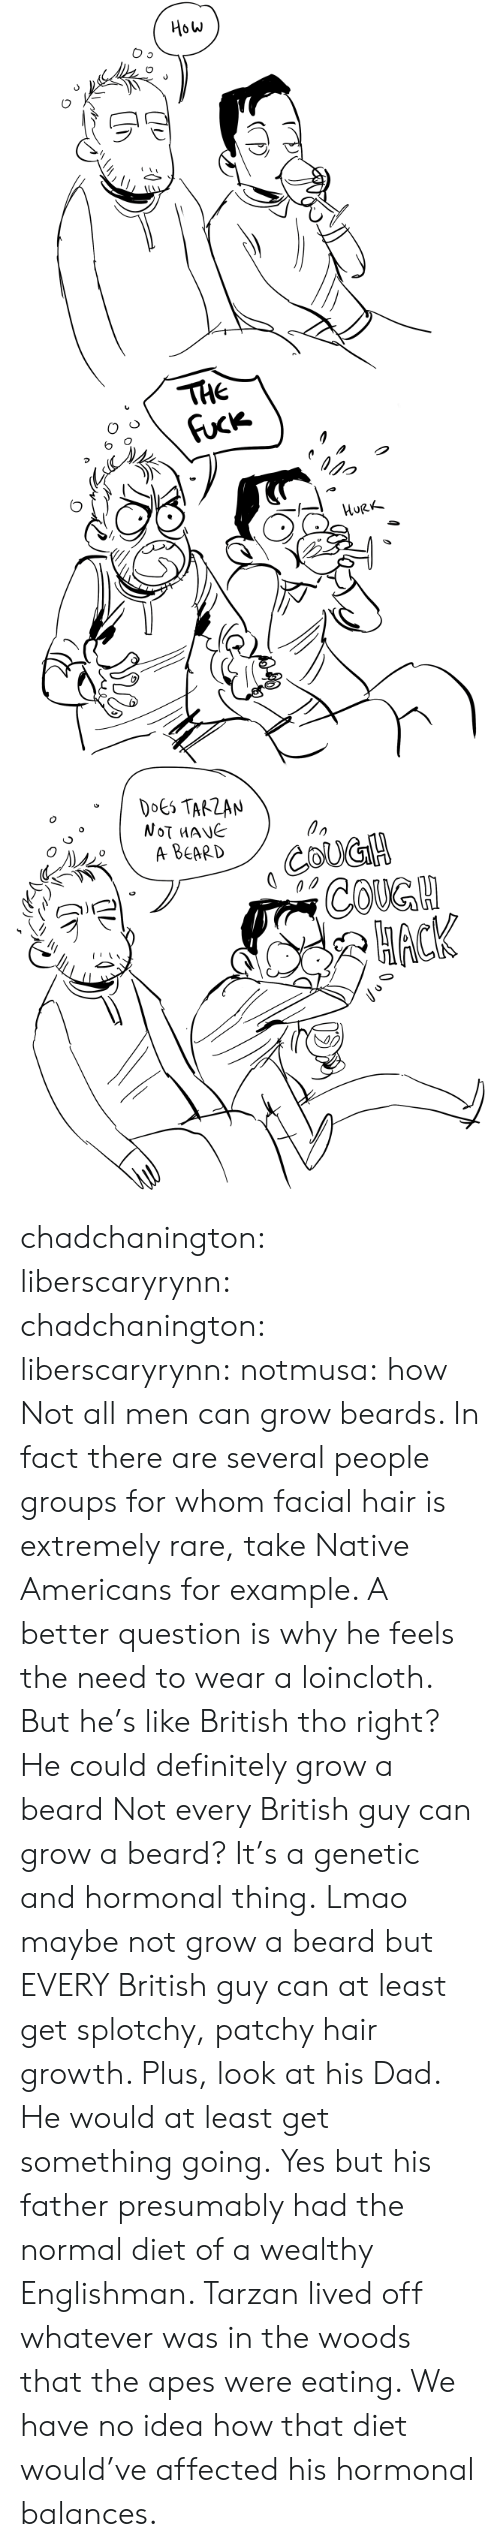 A Beard: How  THE  Fuck  орo  HURK  DOES TARZAN  NOT MANE  A ВЕARD  COUGH  СOKGH  НАСК chadchanington:  liberscaryrynn:  chadchanington:  liberscaryrynn:  notmusa:  how  Not all men can grow beards. In fact there are several people groups for whom facial hair is extremely rare, take Native Americans for example. A better question is why he feels the need to wear a loincloth.  But he's like British tho right? He could definitely grow a beard  Not every British guy can grow a beard? It's a genetic and hormonal thing.  Lmao maybe not grow a beard but EVERY British guy can at least get splotchy, patchy hair growth. Plus, look at his Dad. He would at least get something going.  Yes but his father presumably had the normal diet of a wealthy Englishman. Tarzan lived off whatever was in the woods that the apes were eating. We have no idea how that diet would've affected his hormonal balances.